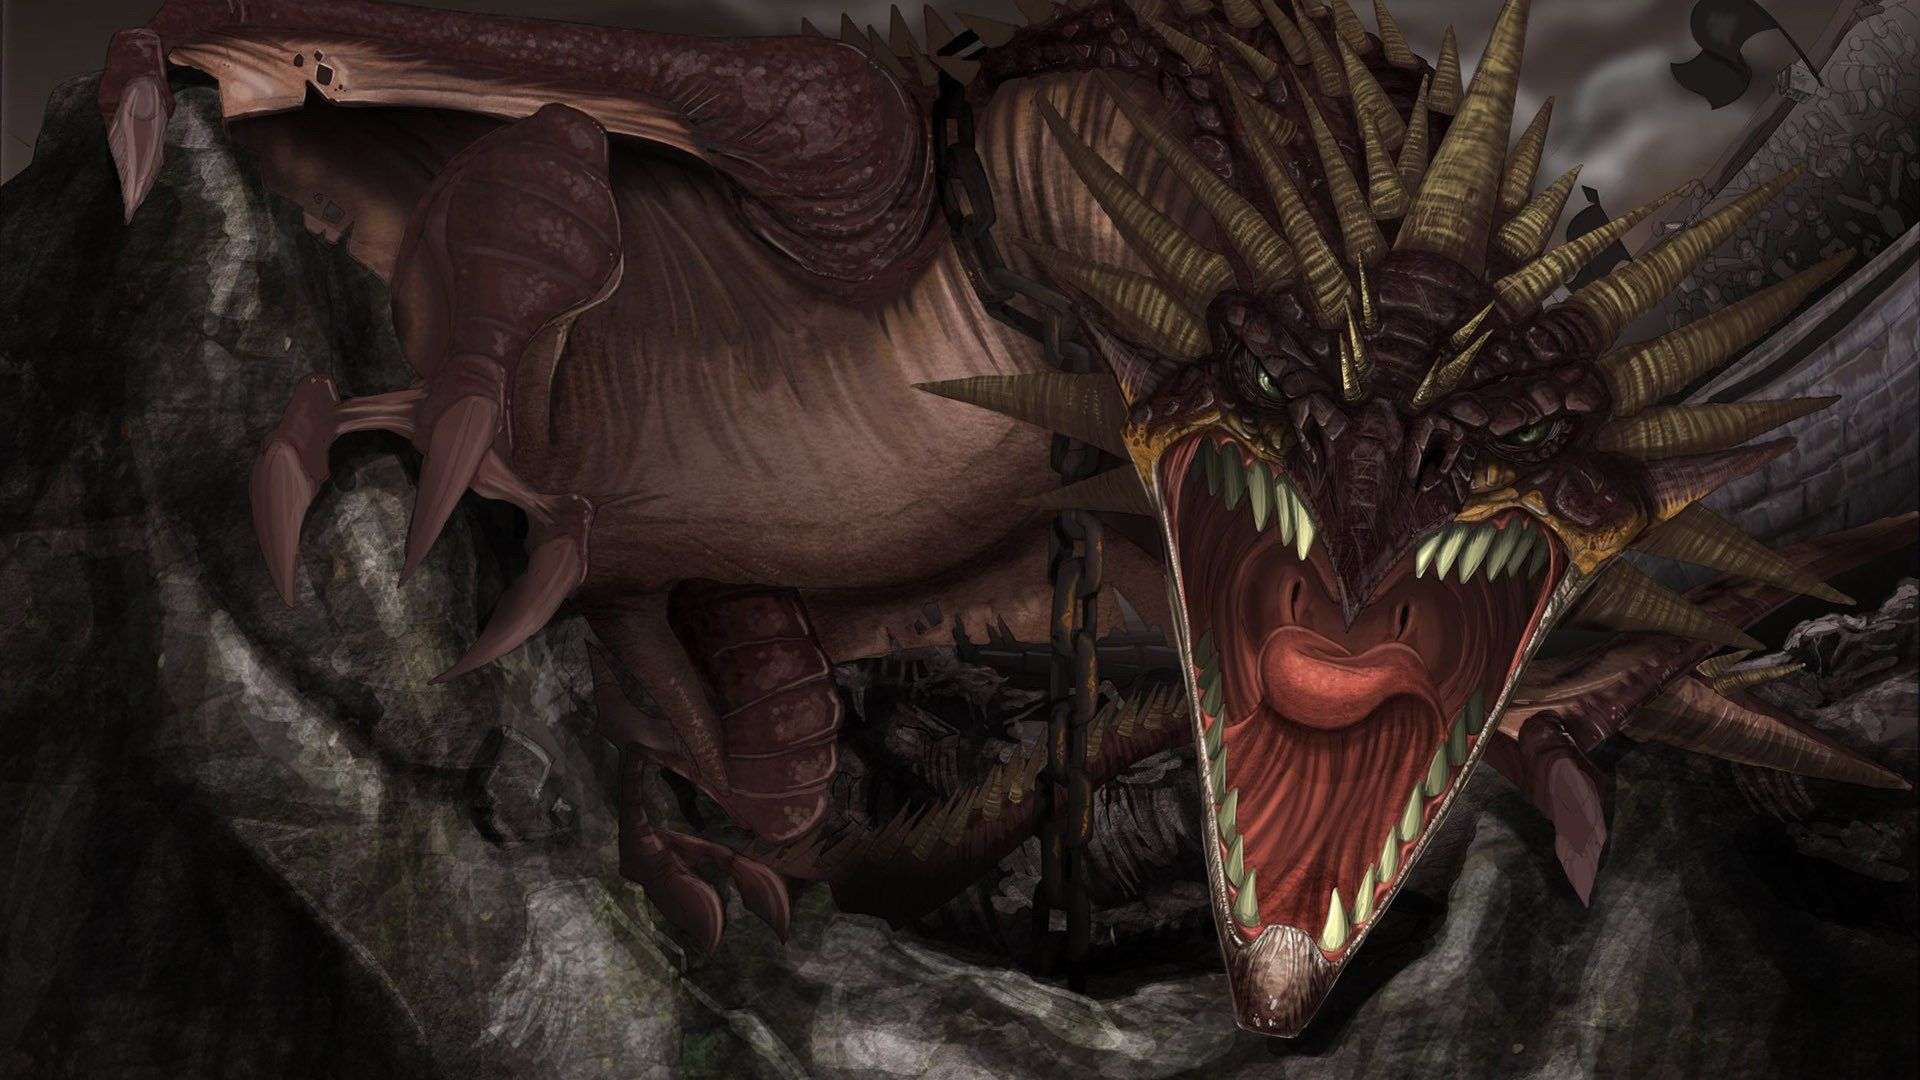 Scary Little Girl Wallpaper Scary Dragon Wallpapers Top Free Scary Dragon